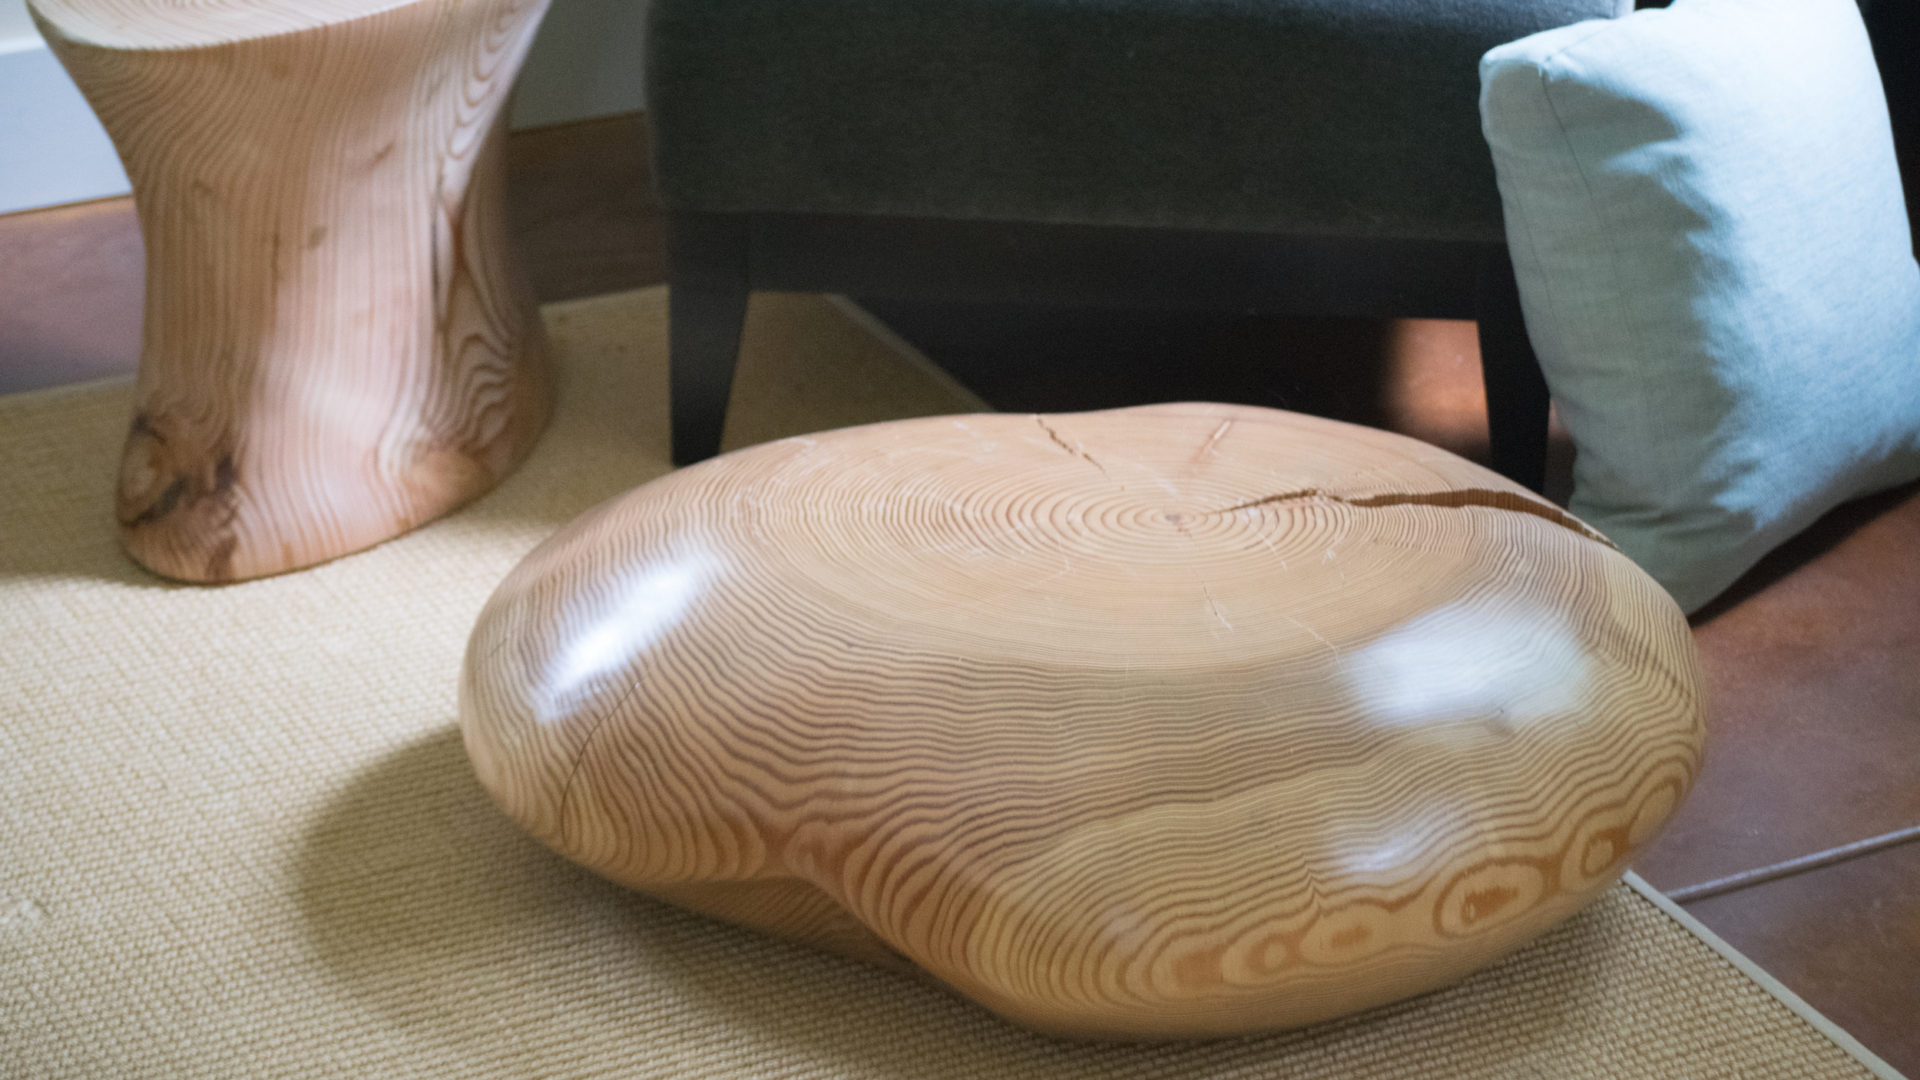 Wood sculptor Joel Sayre left the world of fine furniture making to develop one-of-a-kind tables, stools, bowls, and more.